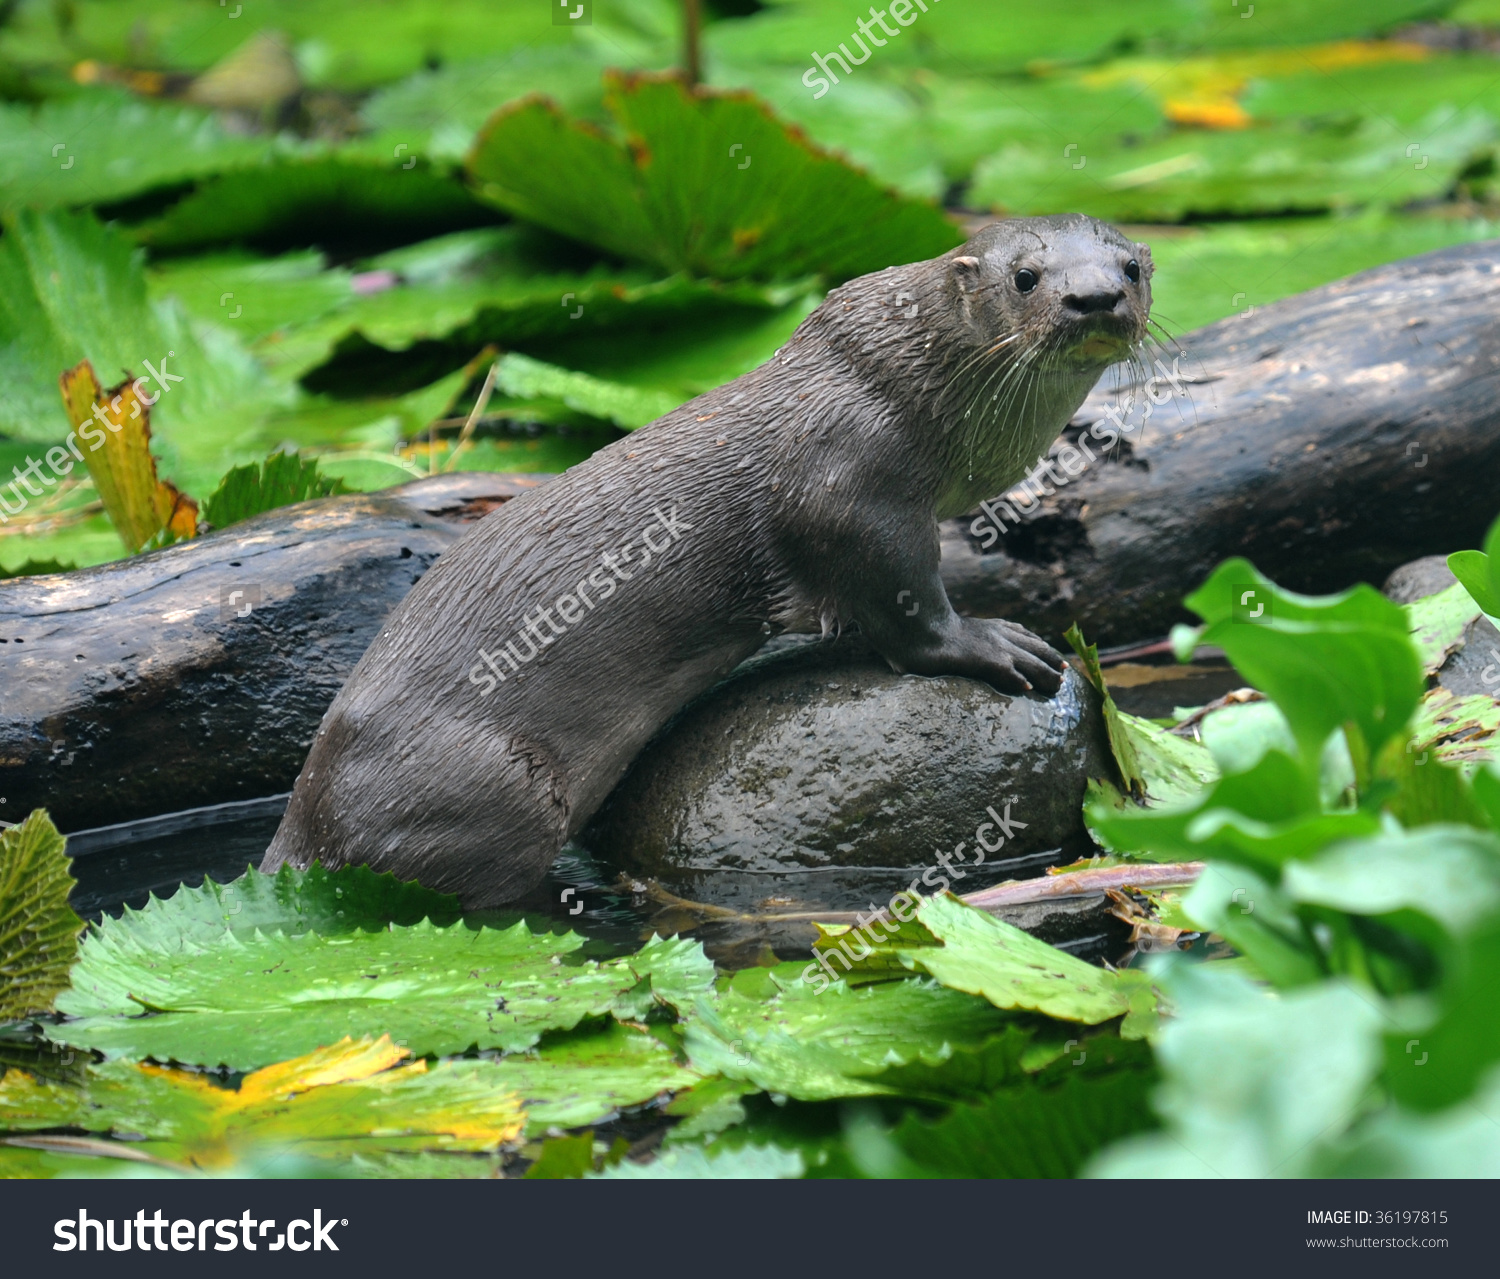 Giant River Otter Standing On Submerged Stock Photo 36197815.